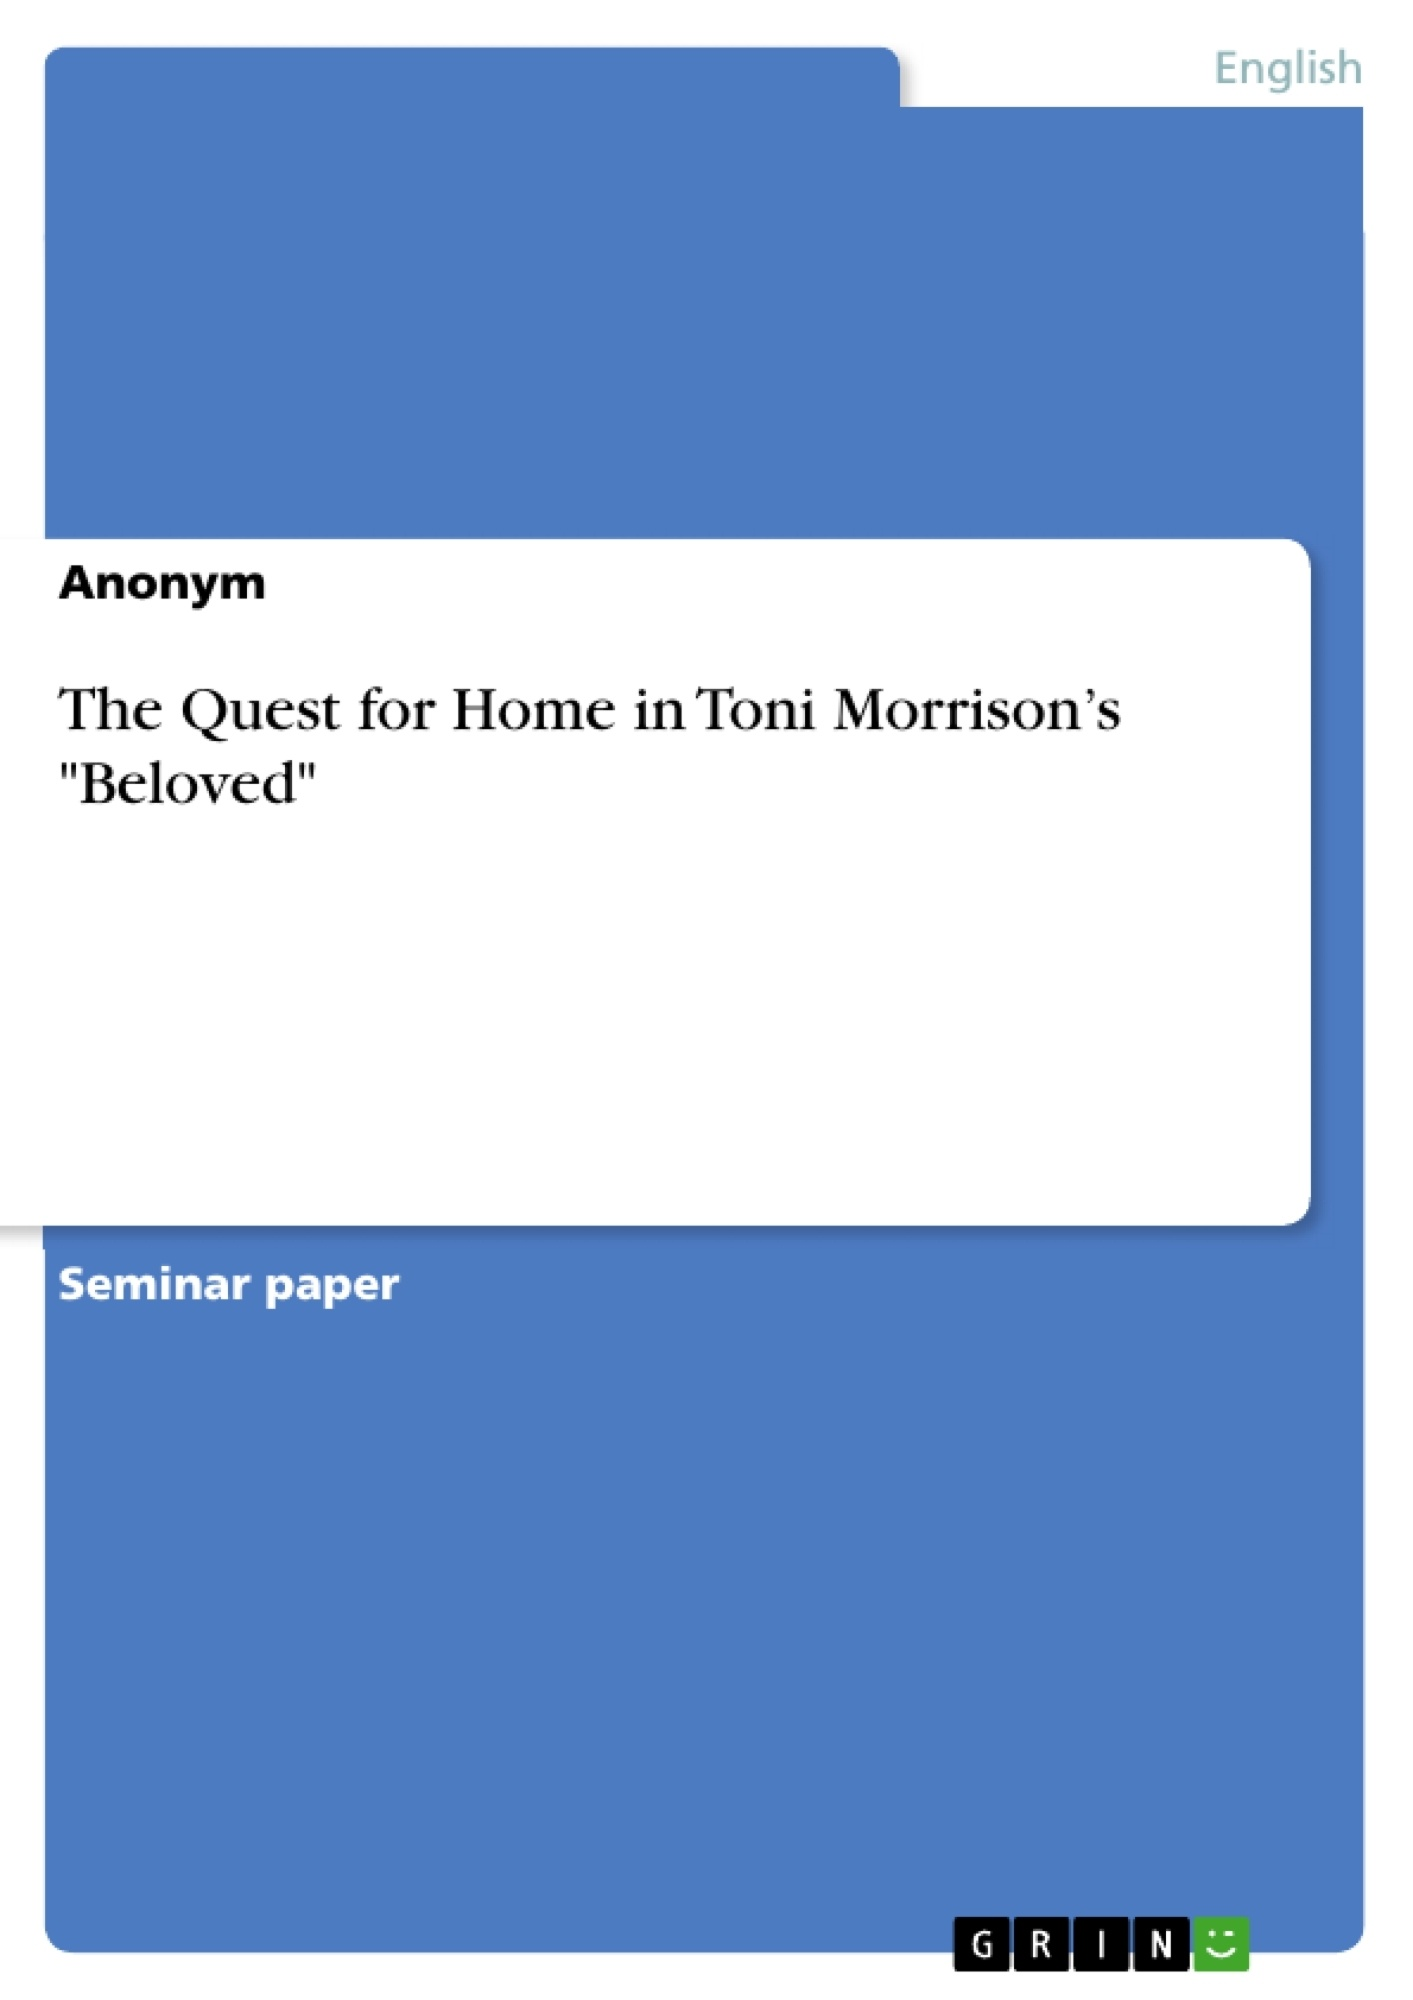 thesis on toni morrison novels Reproduced from other sources have been properly acknowledged the thesis has not been submitted for any other degree or professional qualification international authors, namely, toni morrison, cormac mccarthy, j m coetzee, and contextualization of the novels, the thesis maintains that these authors' specific.